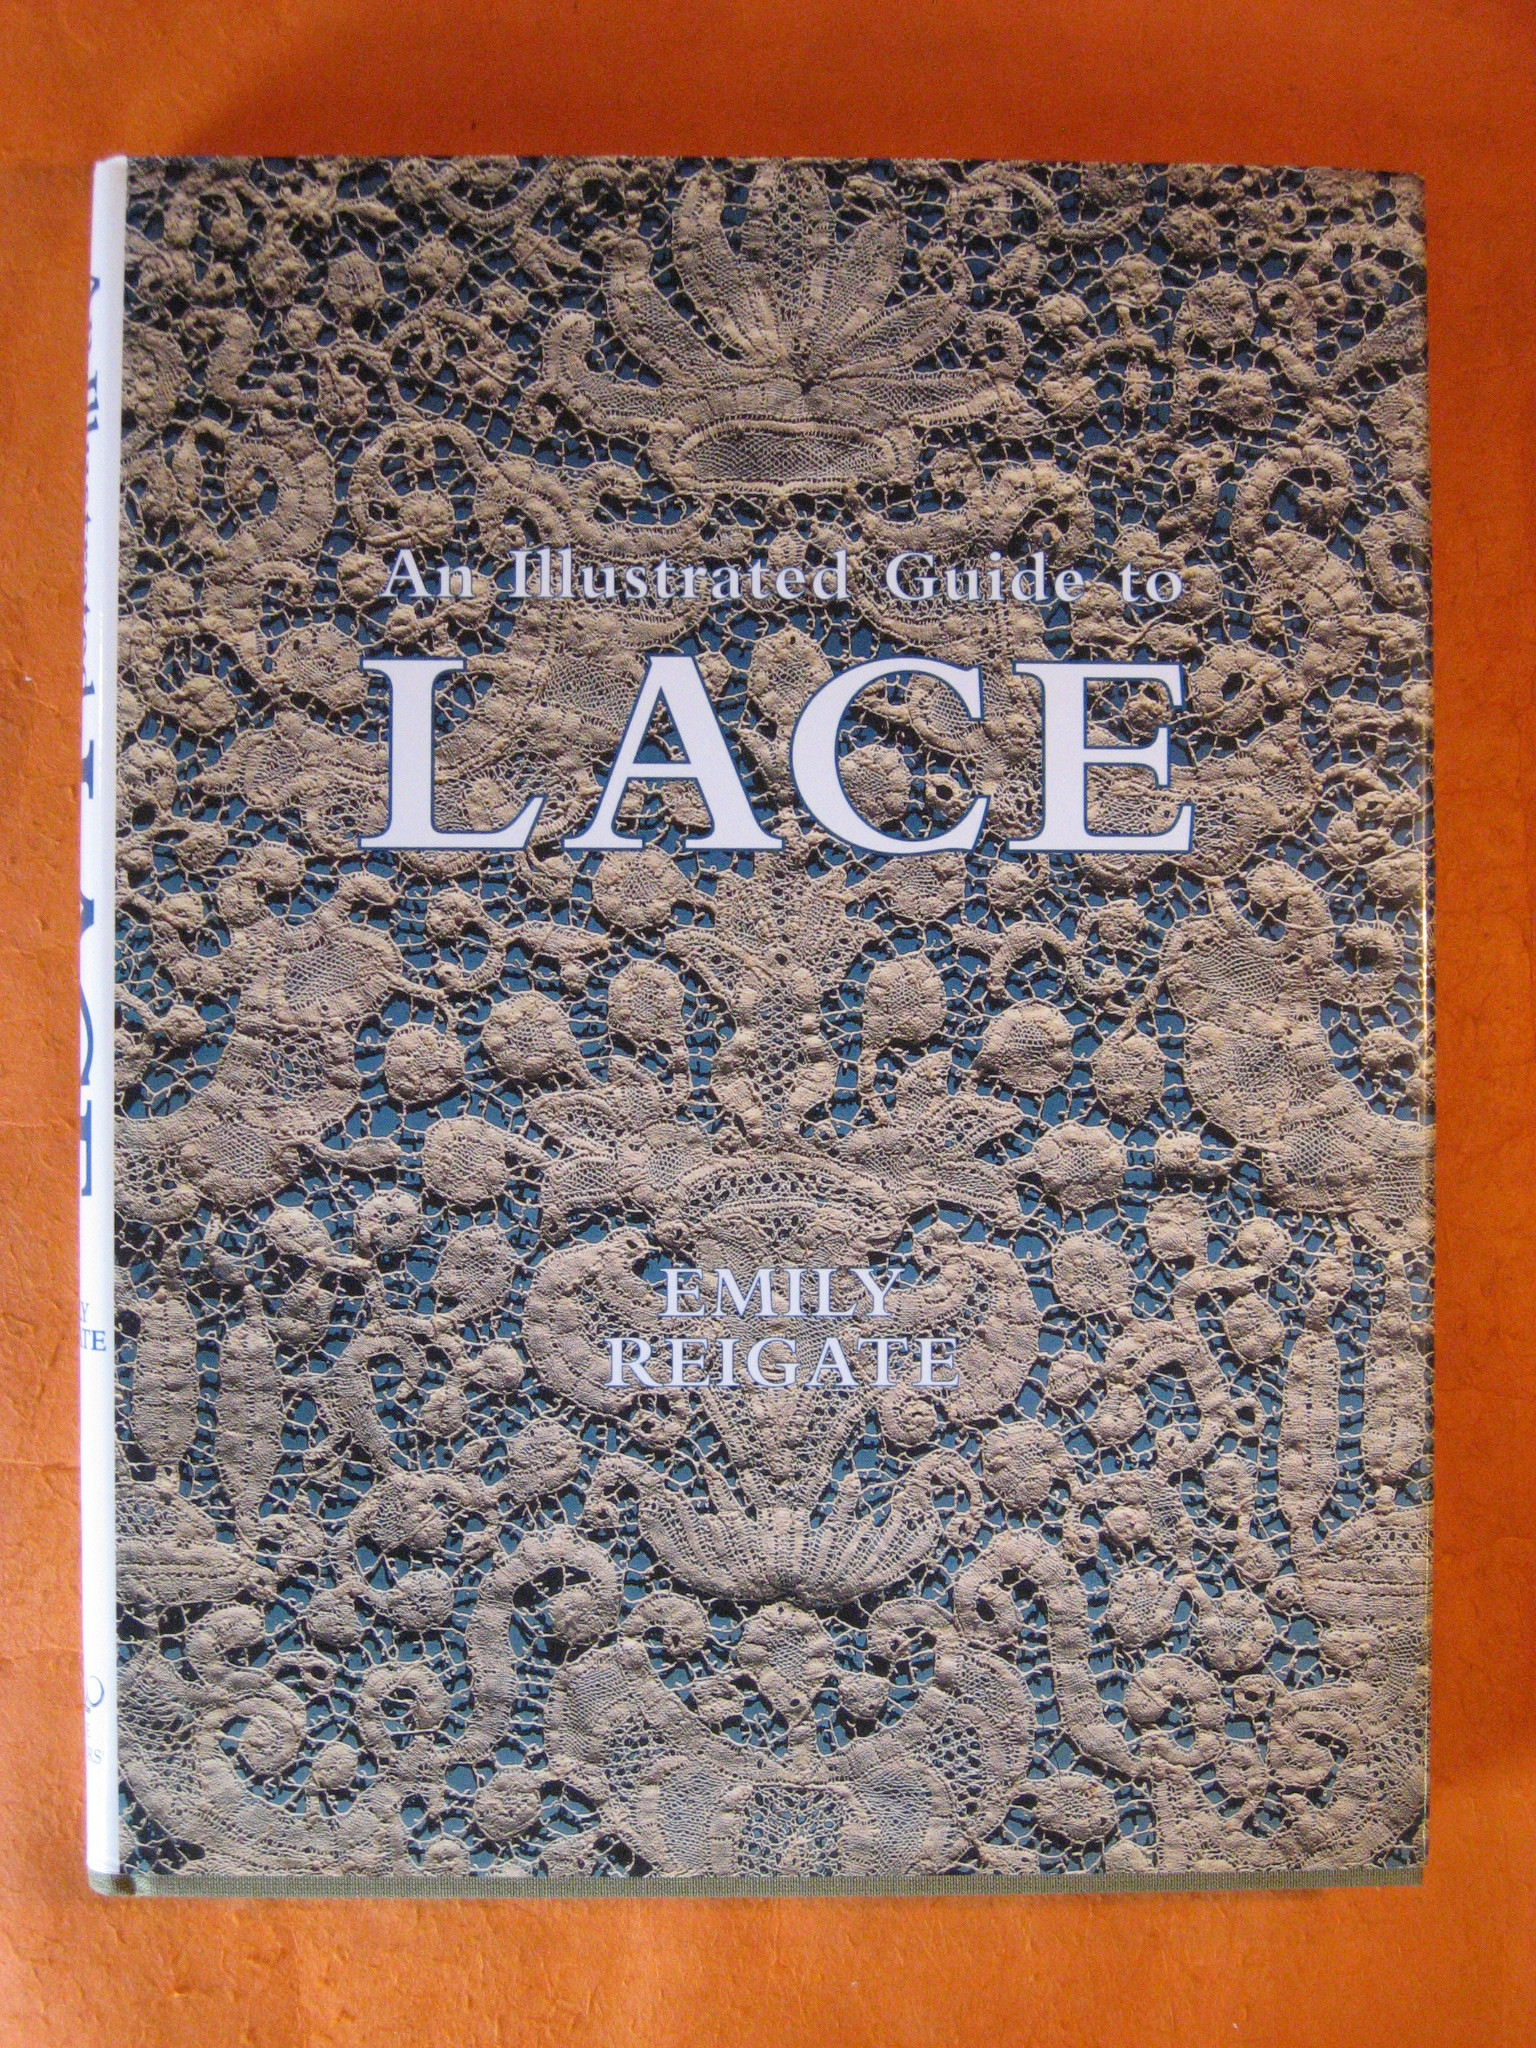 An Illustrated Guide to Lace, Reigate, Emily